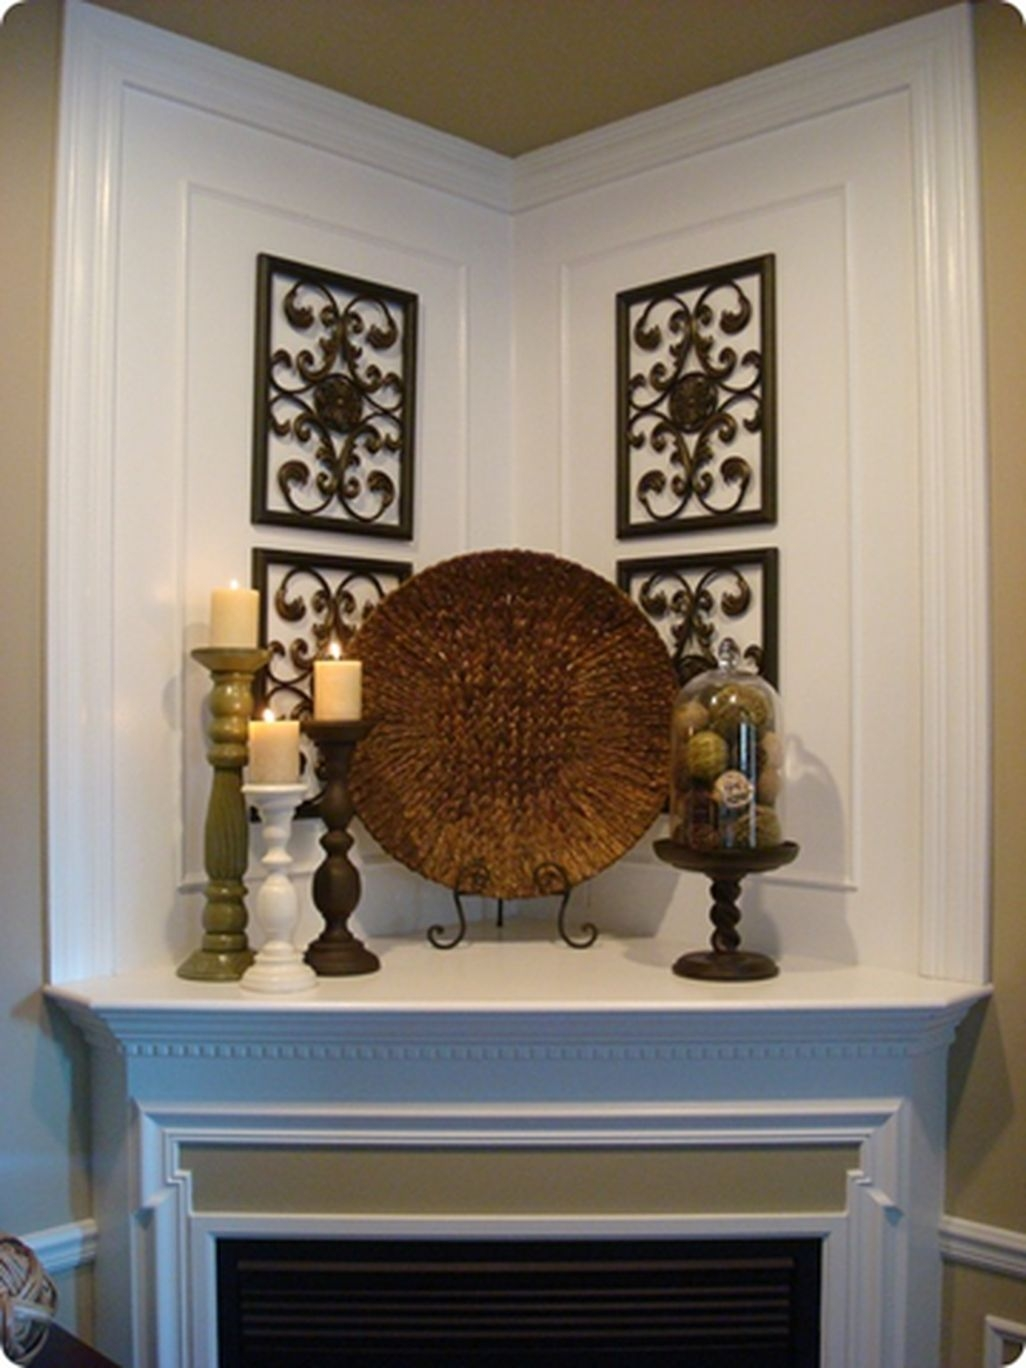 Large decorative plates for display & Large Decorative Plates For Display - Foter